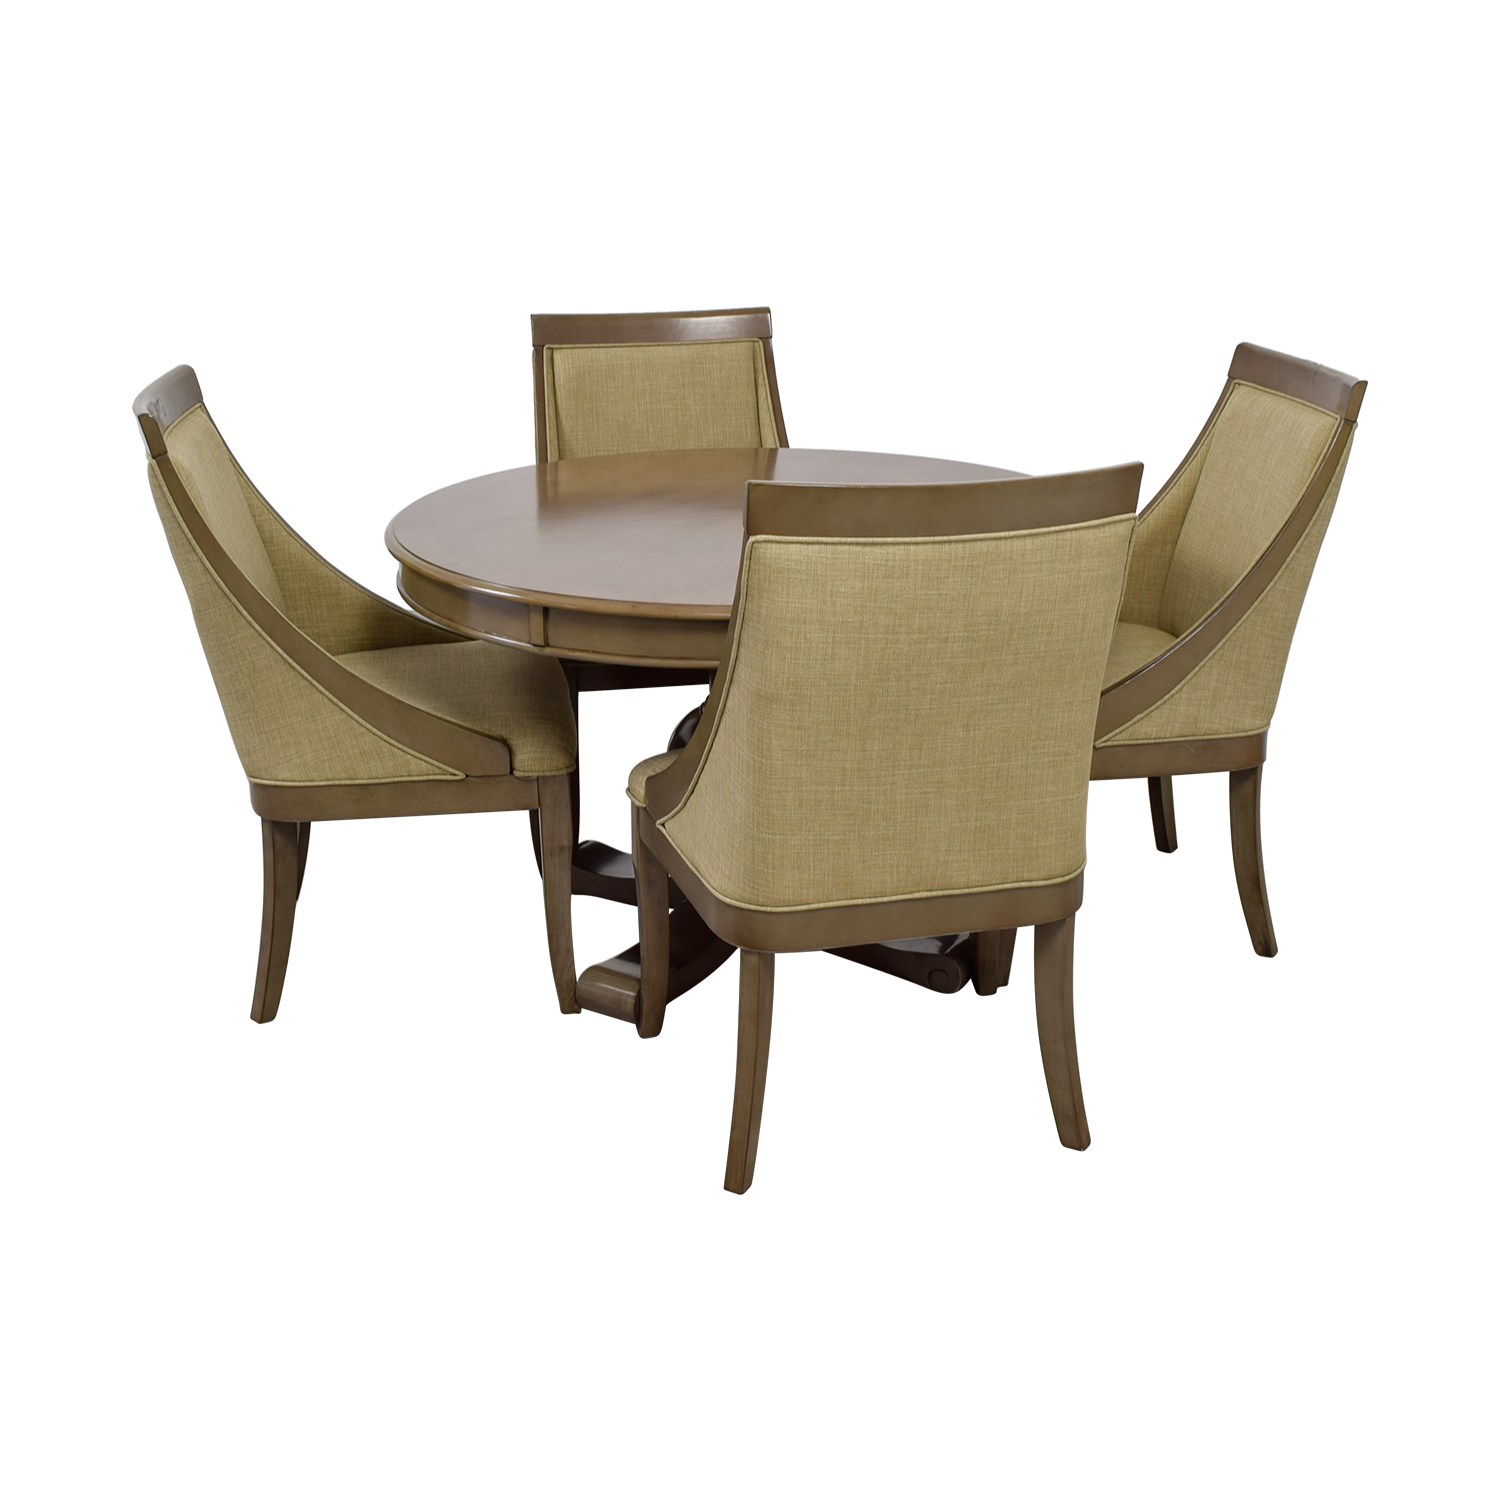 Bob's Furniture Bob's Furniture Gatsby Round Dining Set with Swoop Chairs for sale